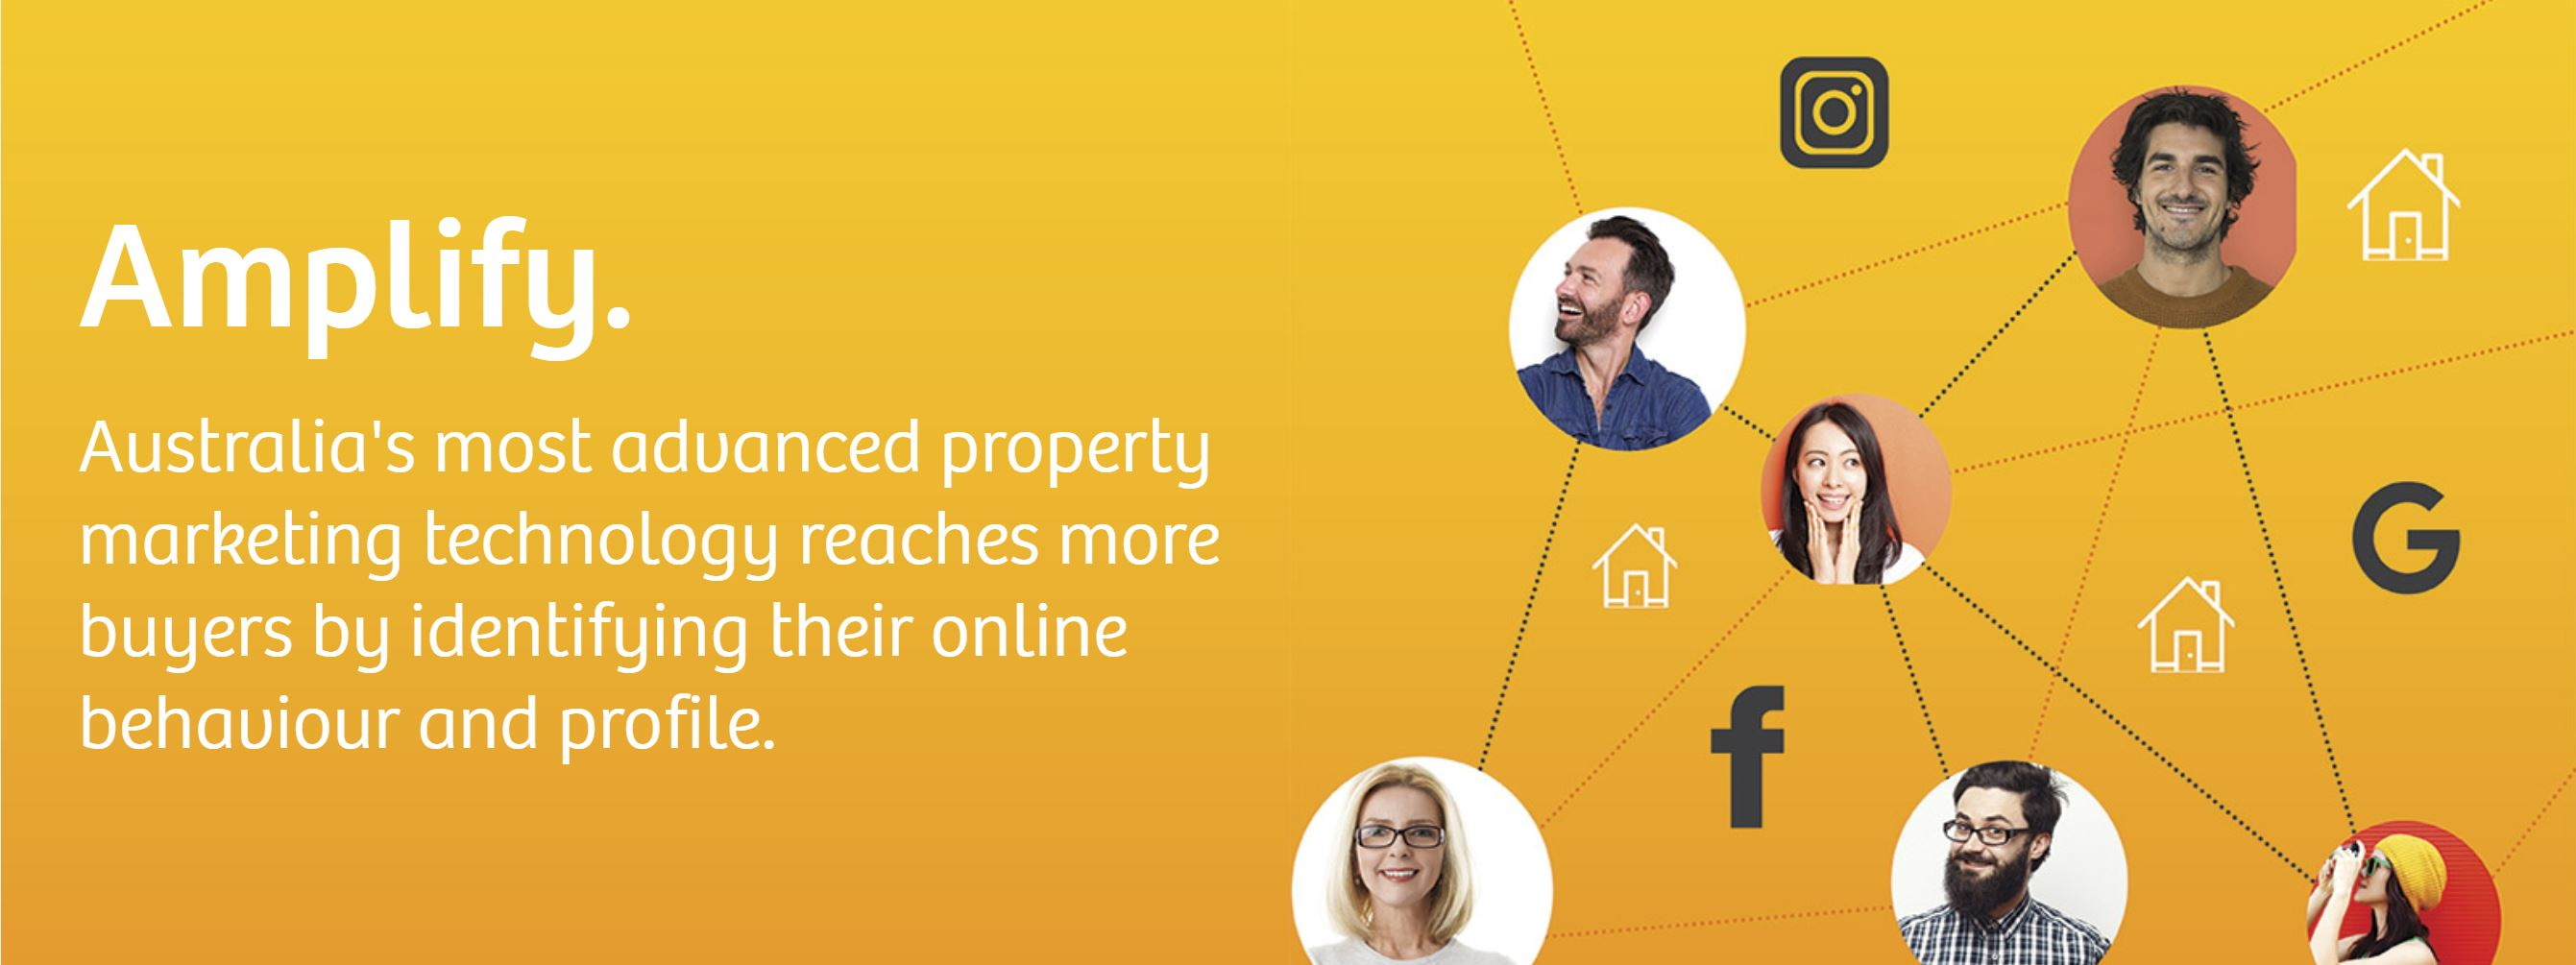 Amplify: Australia's most advanced property marketing technology